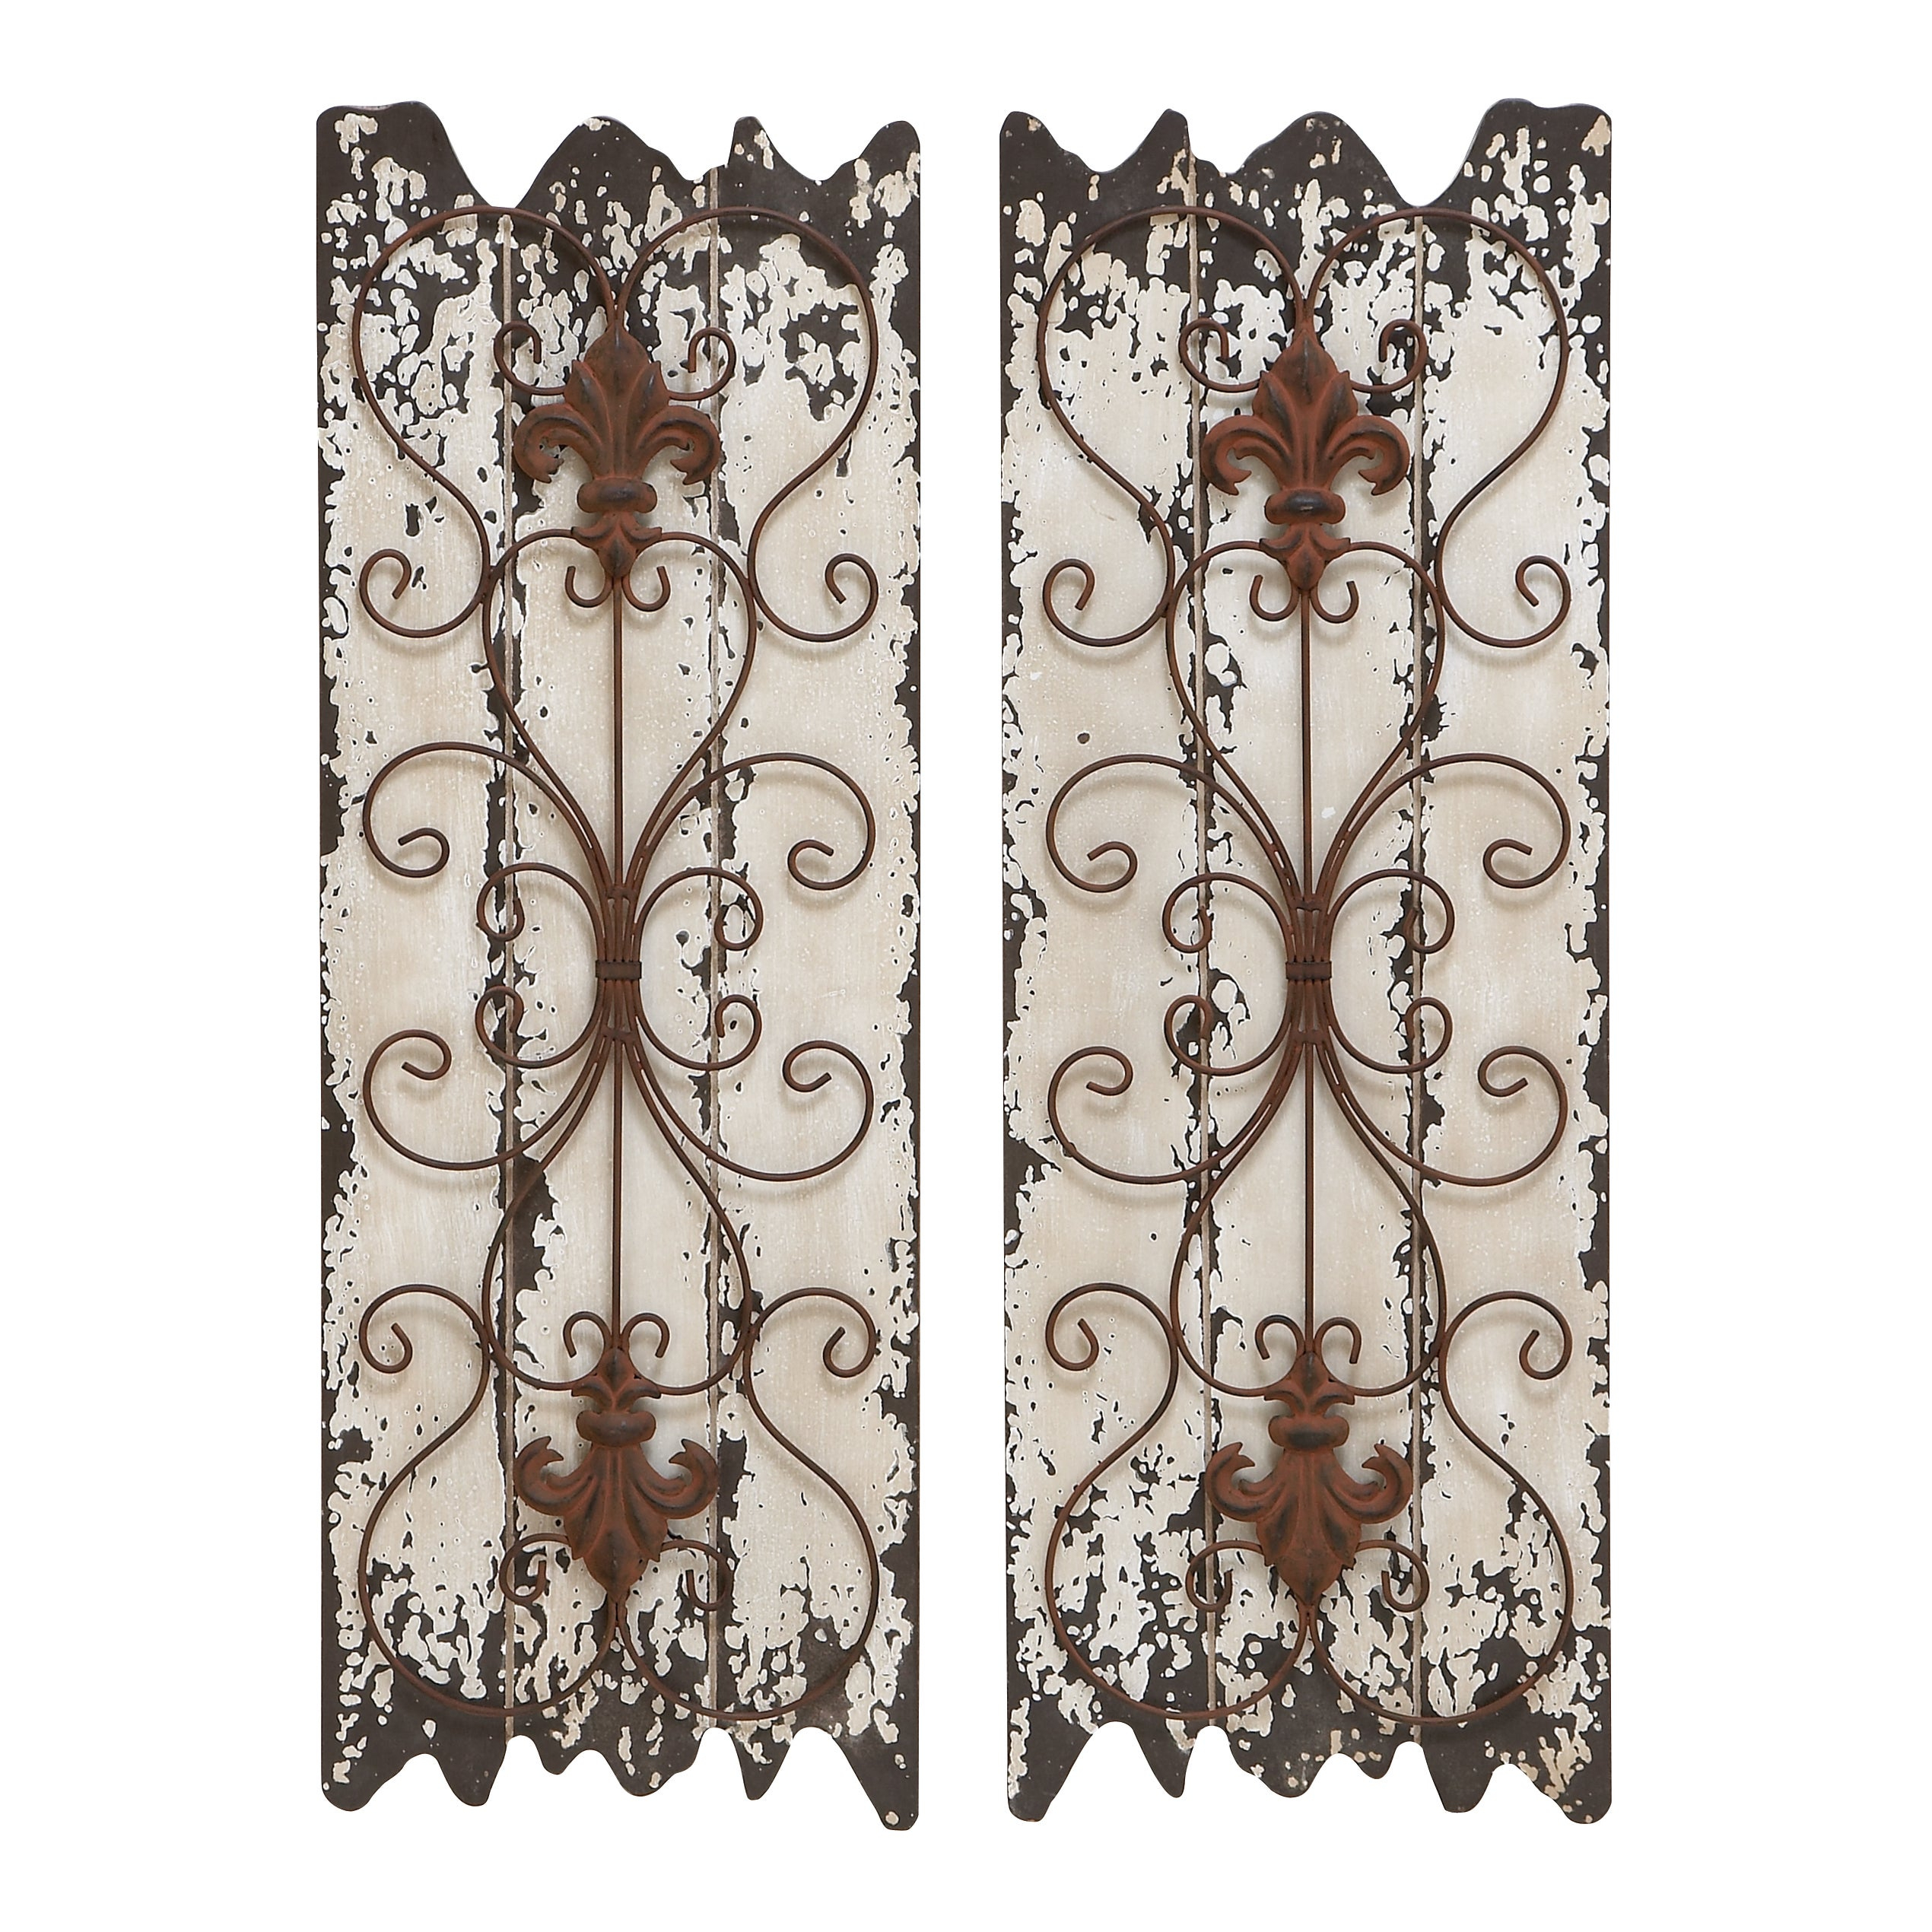 Wood And Metal Wall Decor Panel (set Of 2) – White In Brown Wood And Metal Wall Decor (View 5 of 30)